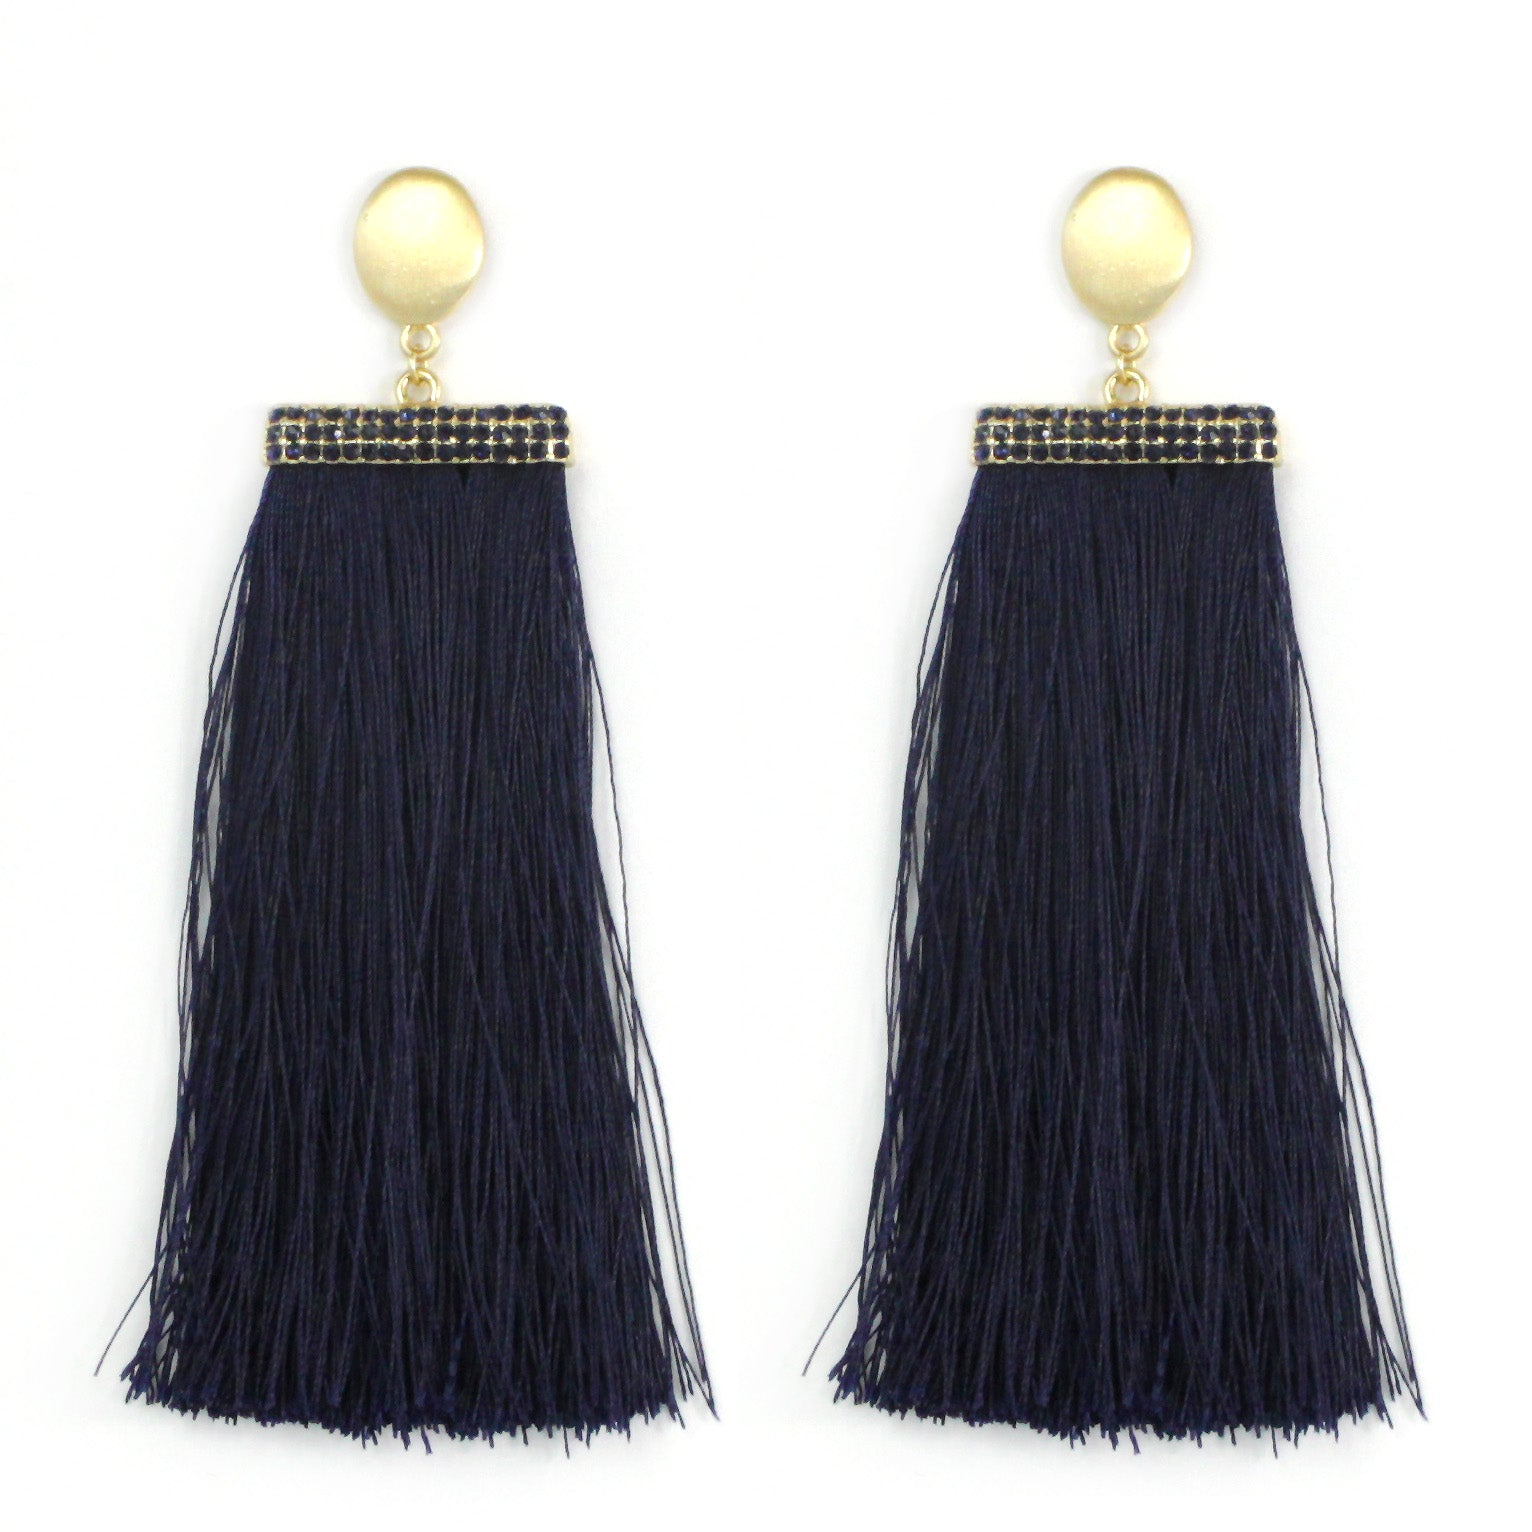 Glass Stone with Thread Tassel Earrings